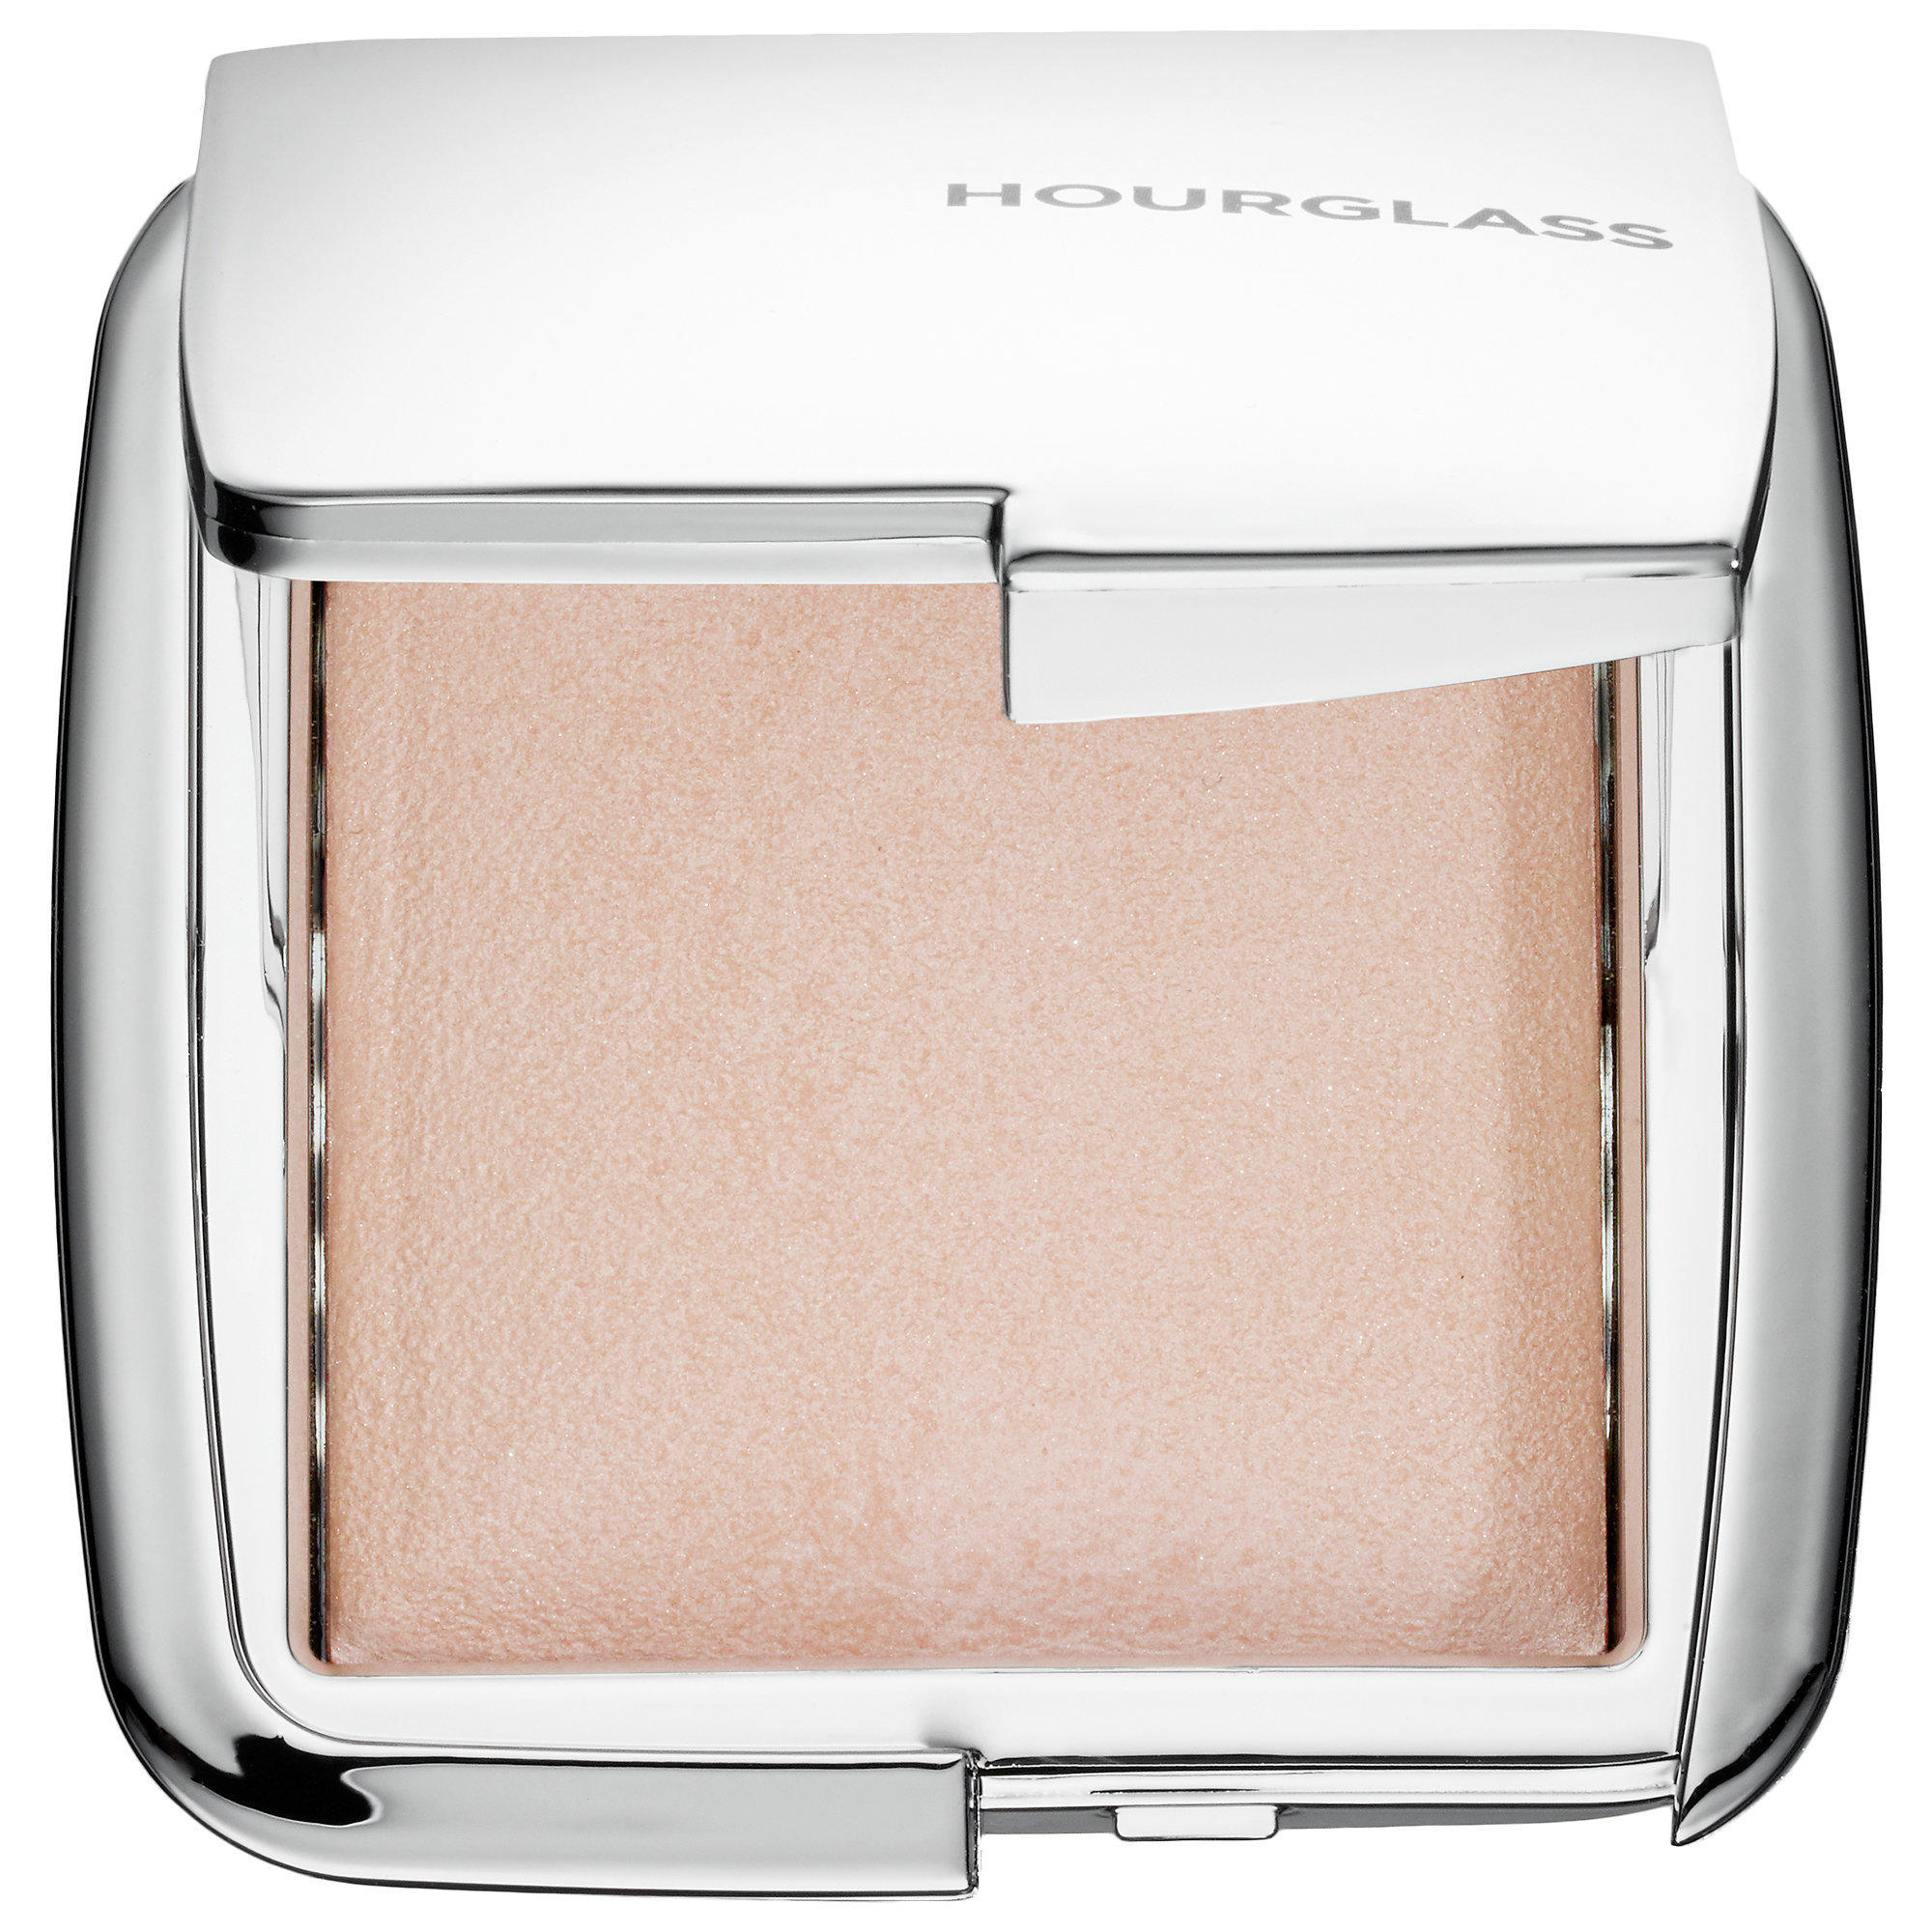 Hourglass Ambient Strobe Lighting Powder пудра-хайлайтер 4,6г